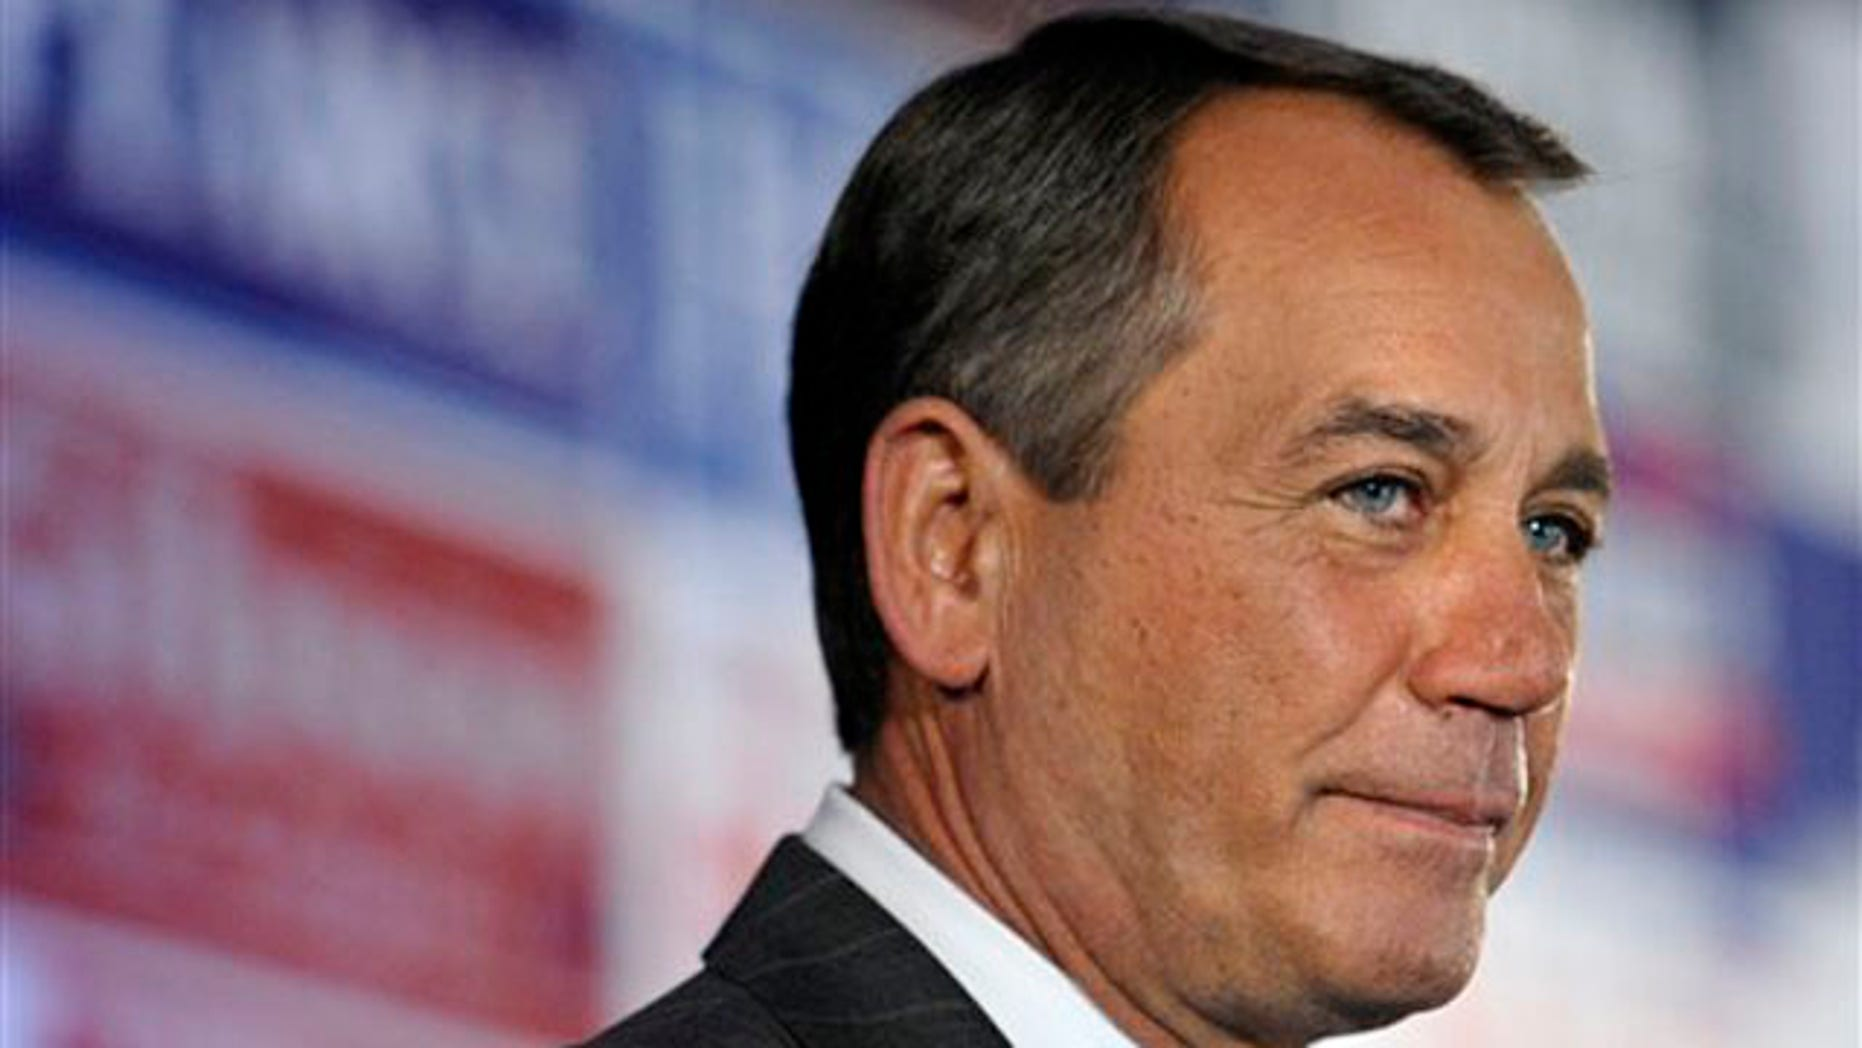 House Republican Leader John Boehner speaks at a party hosted by the National Republican Congressional Committee at the Grand Hyatt hotel in Washington Nov. 2. (AP Photo)